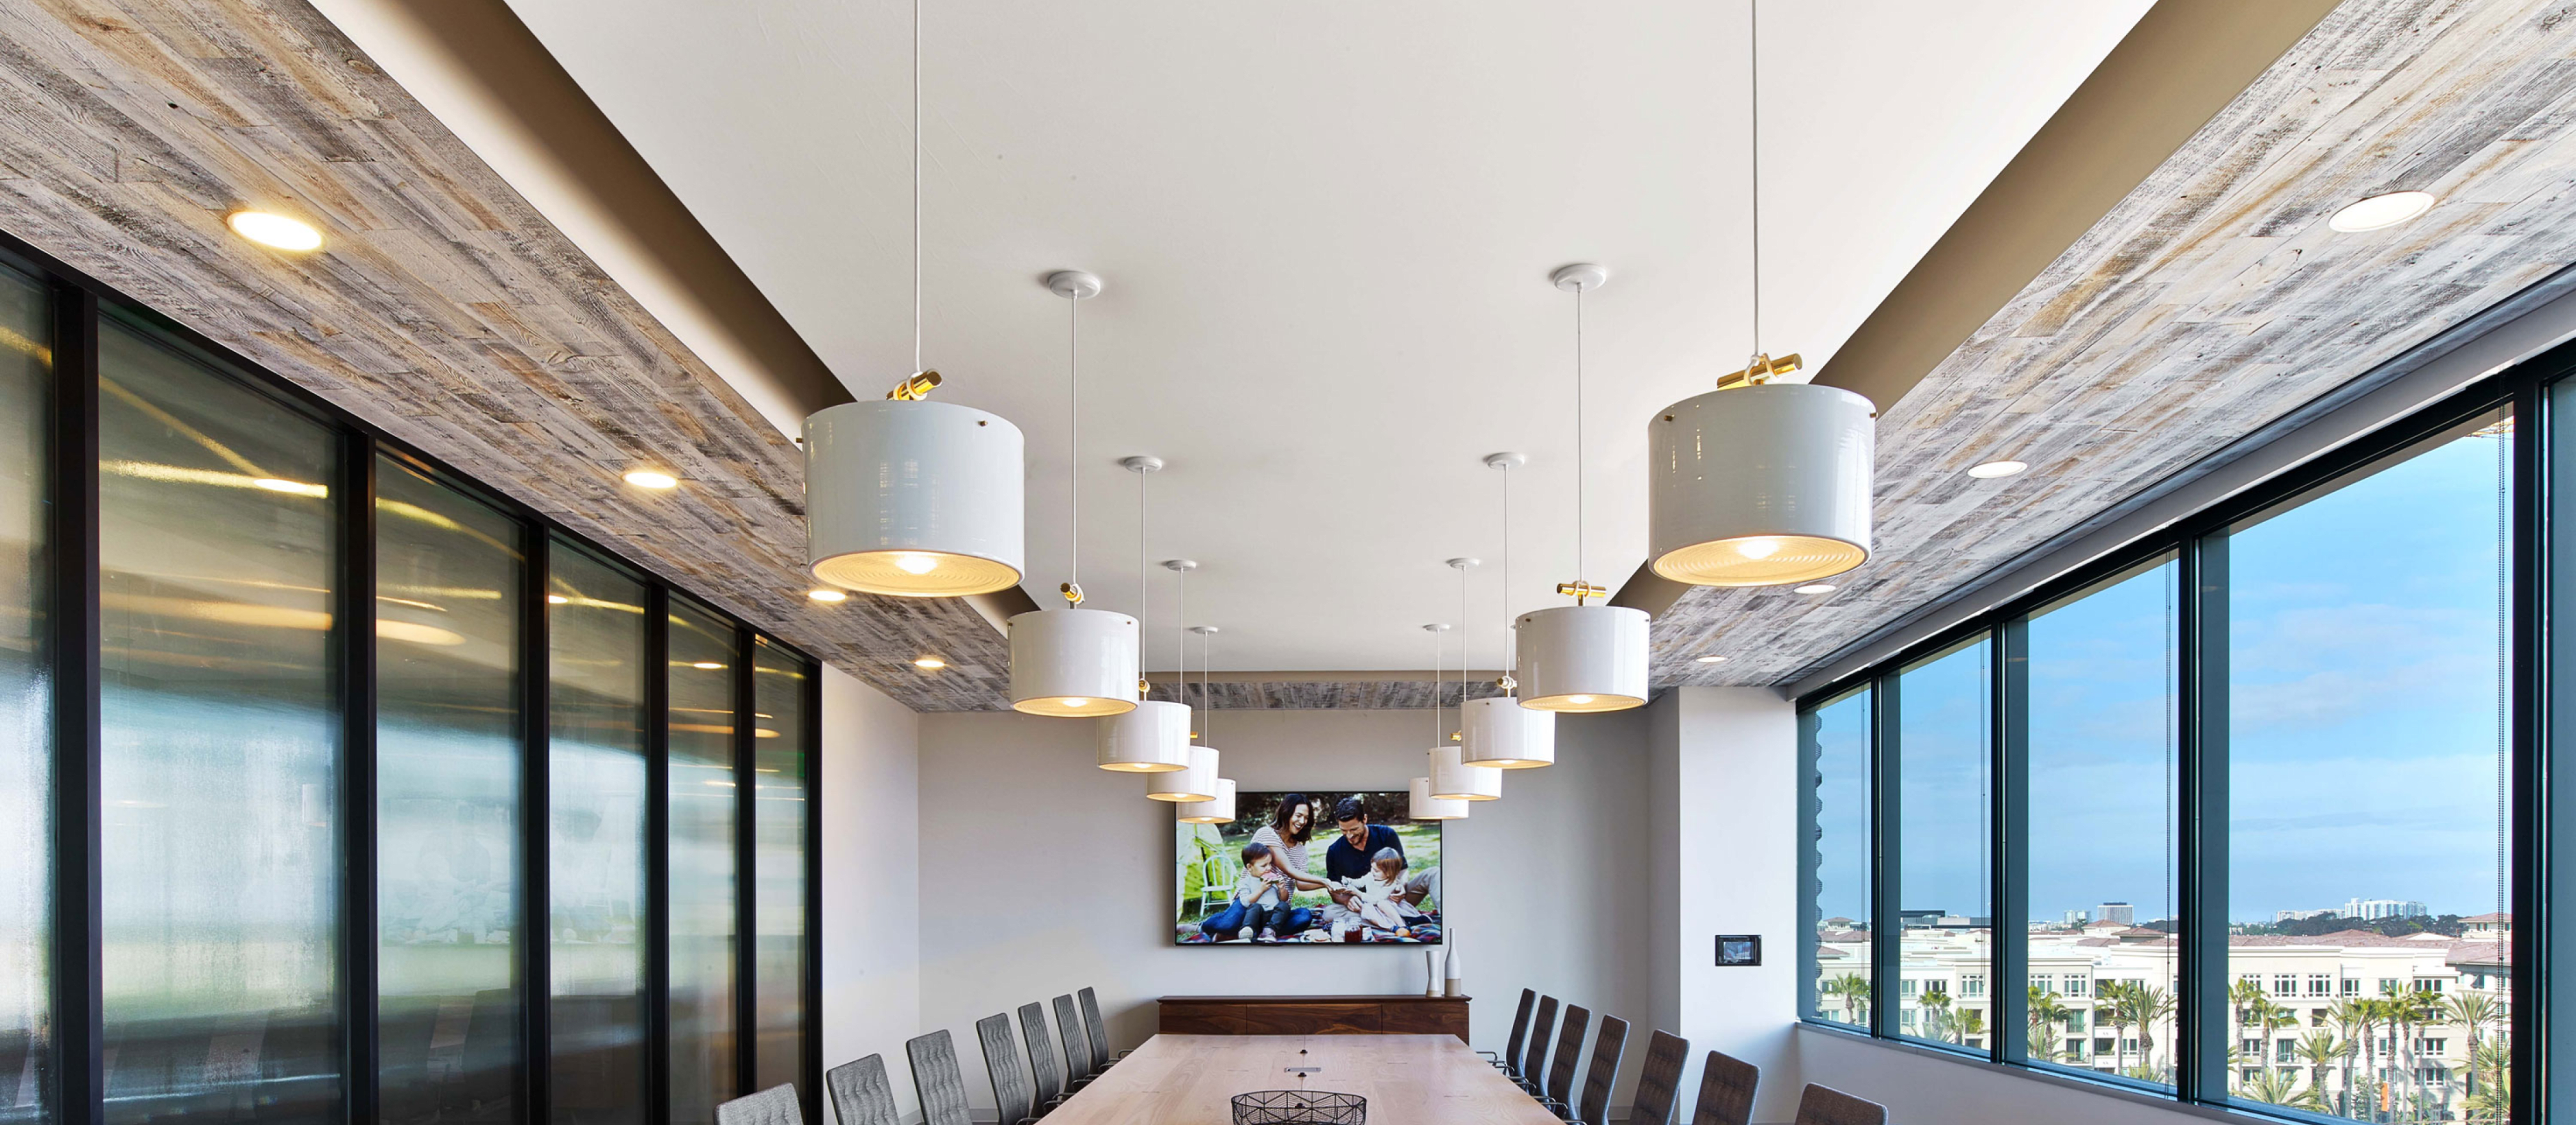 Modern office conference room with Stikwood real reclaimed pine peel and stick wood plank ceiling with silver, gray, tan and brown colors.